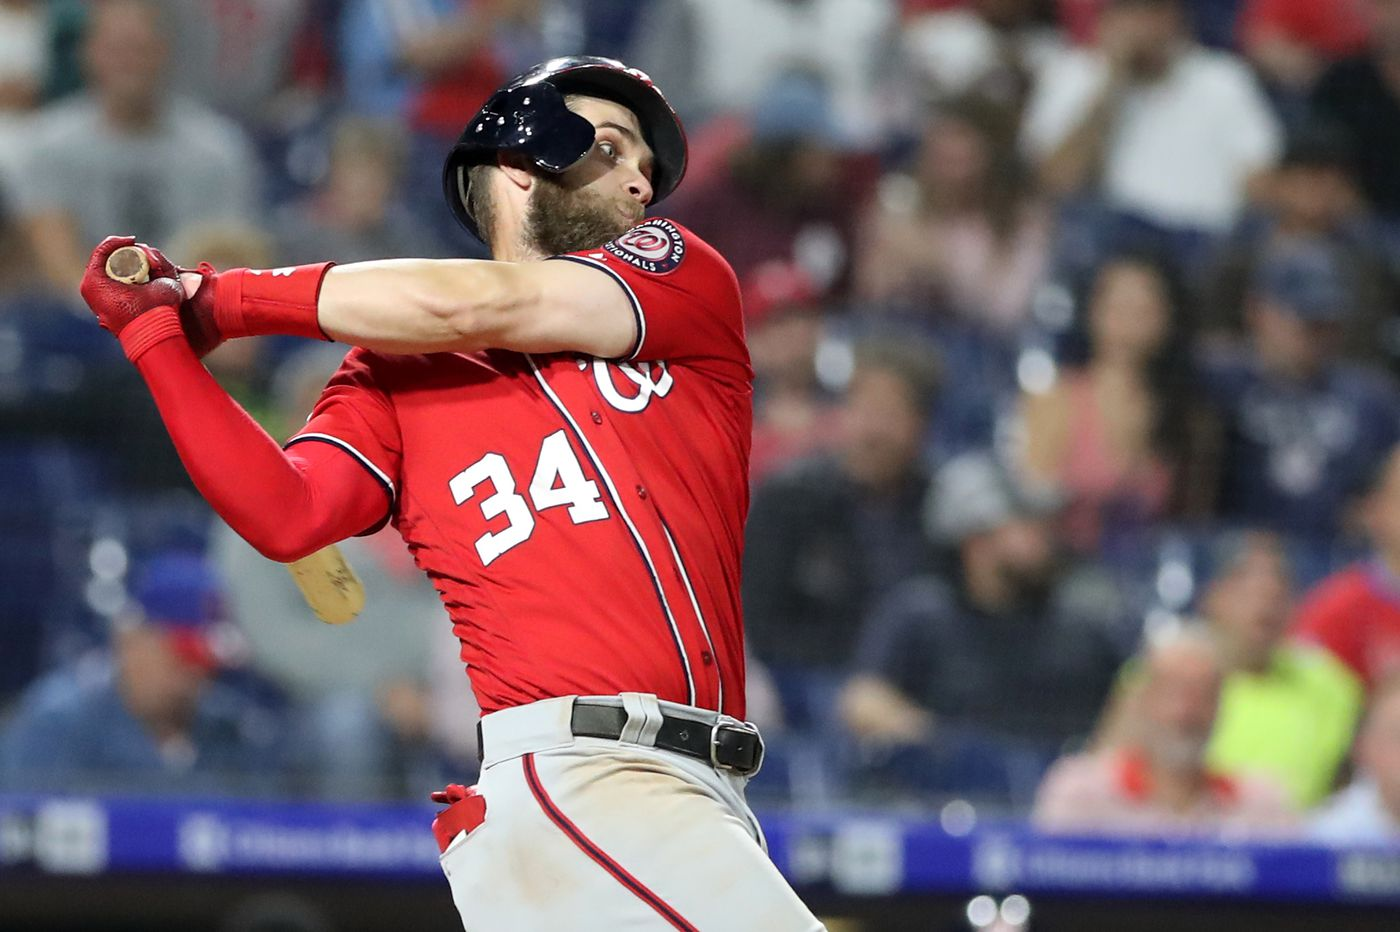 Bryce Harper is a 'franchise-altering' player who makes the Phillies World Series contenders | Scott Lauber